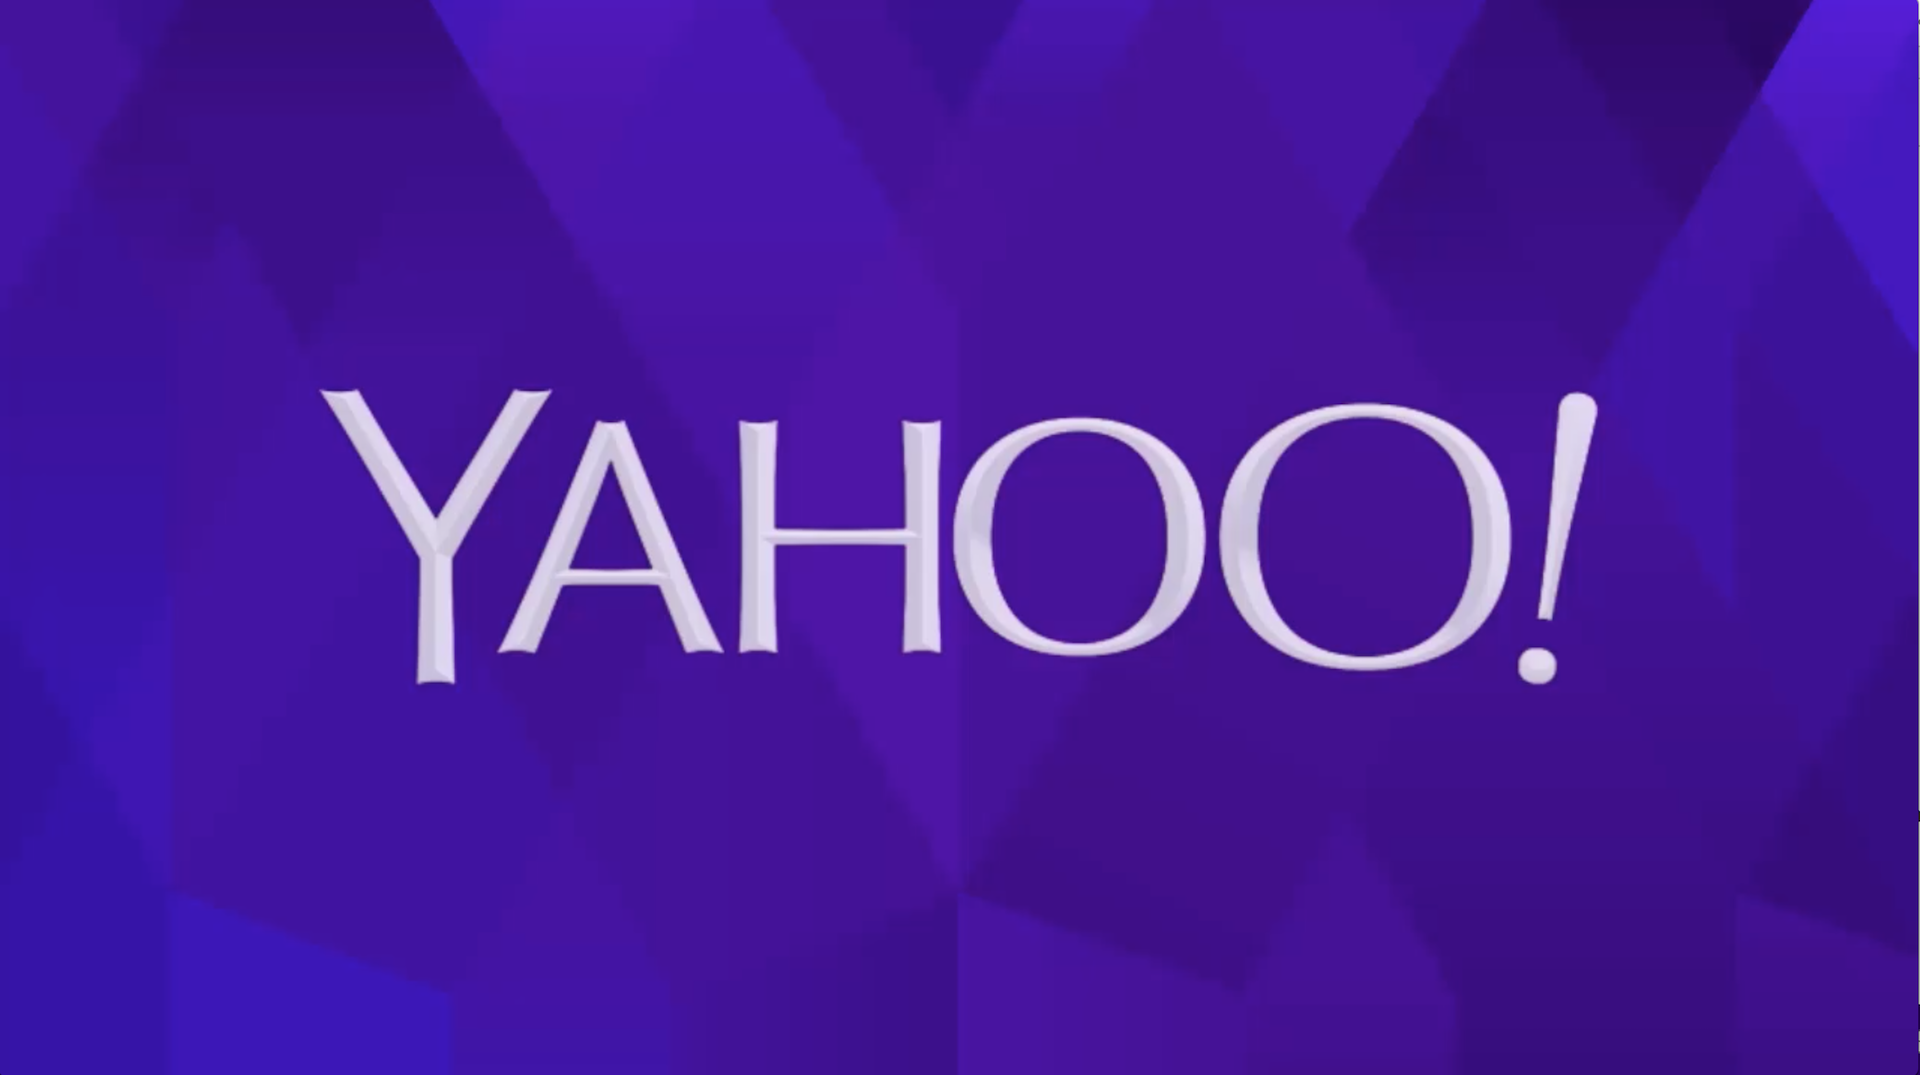 Yahoo Stock Quotes Rolex%2Cr  Stock Prices  Quote Comparison  Yahoo Finance